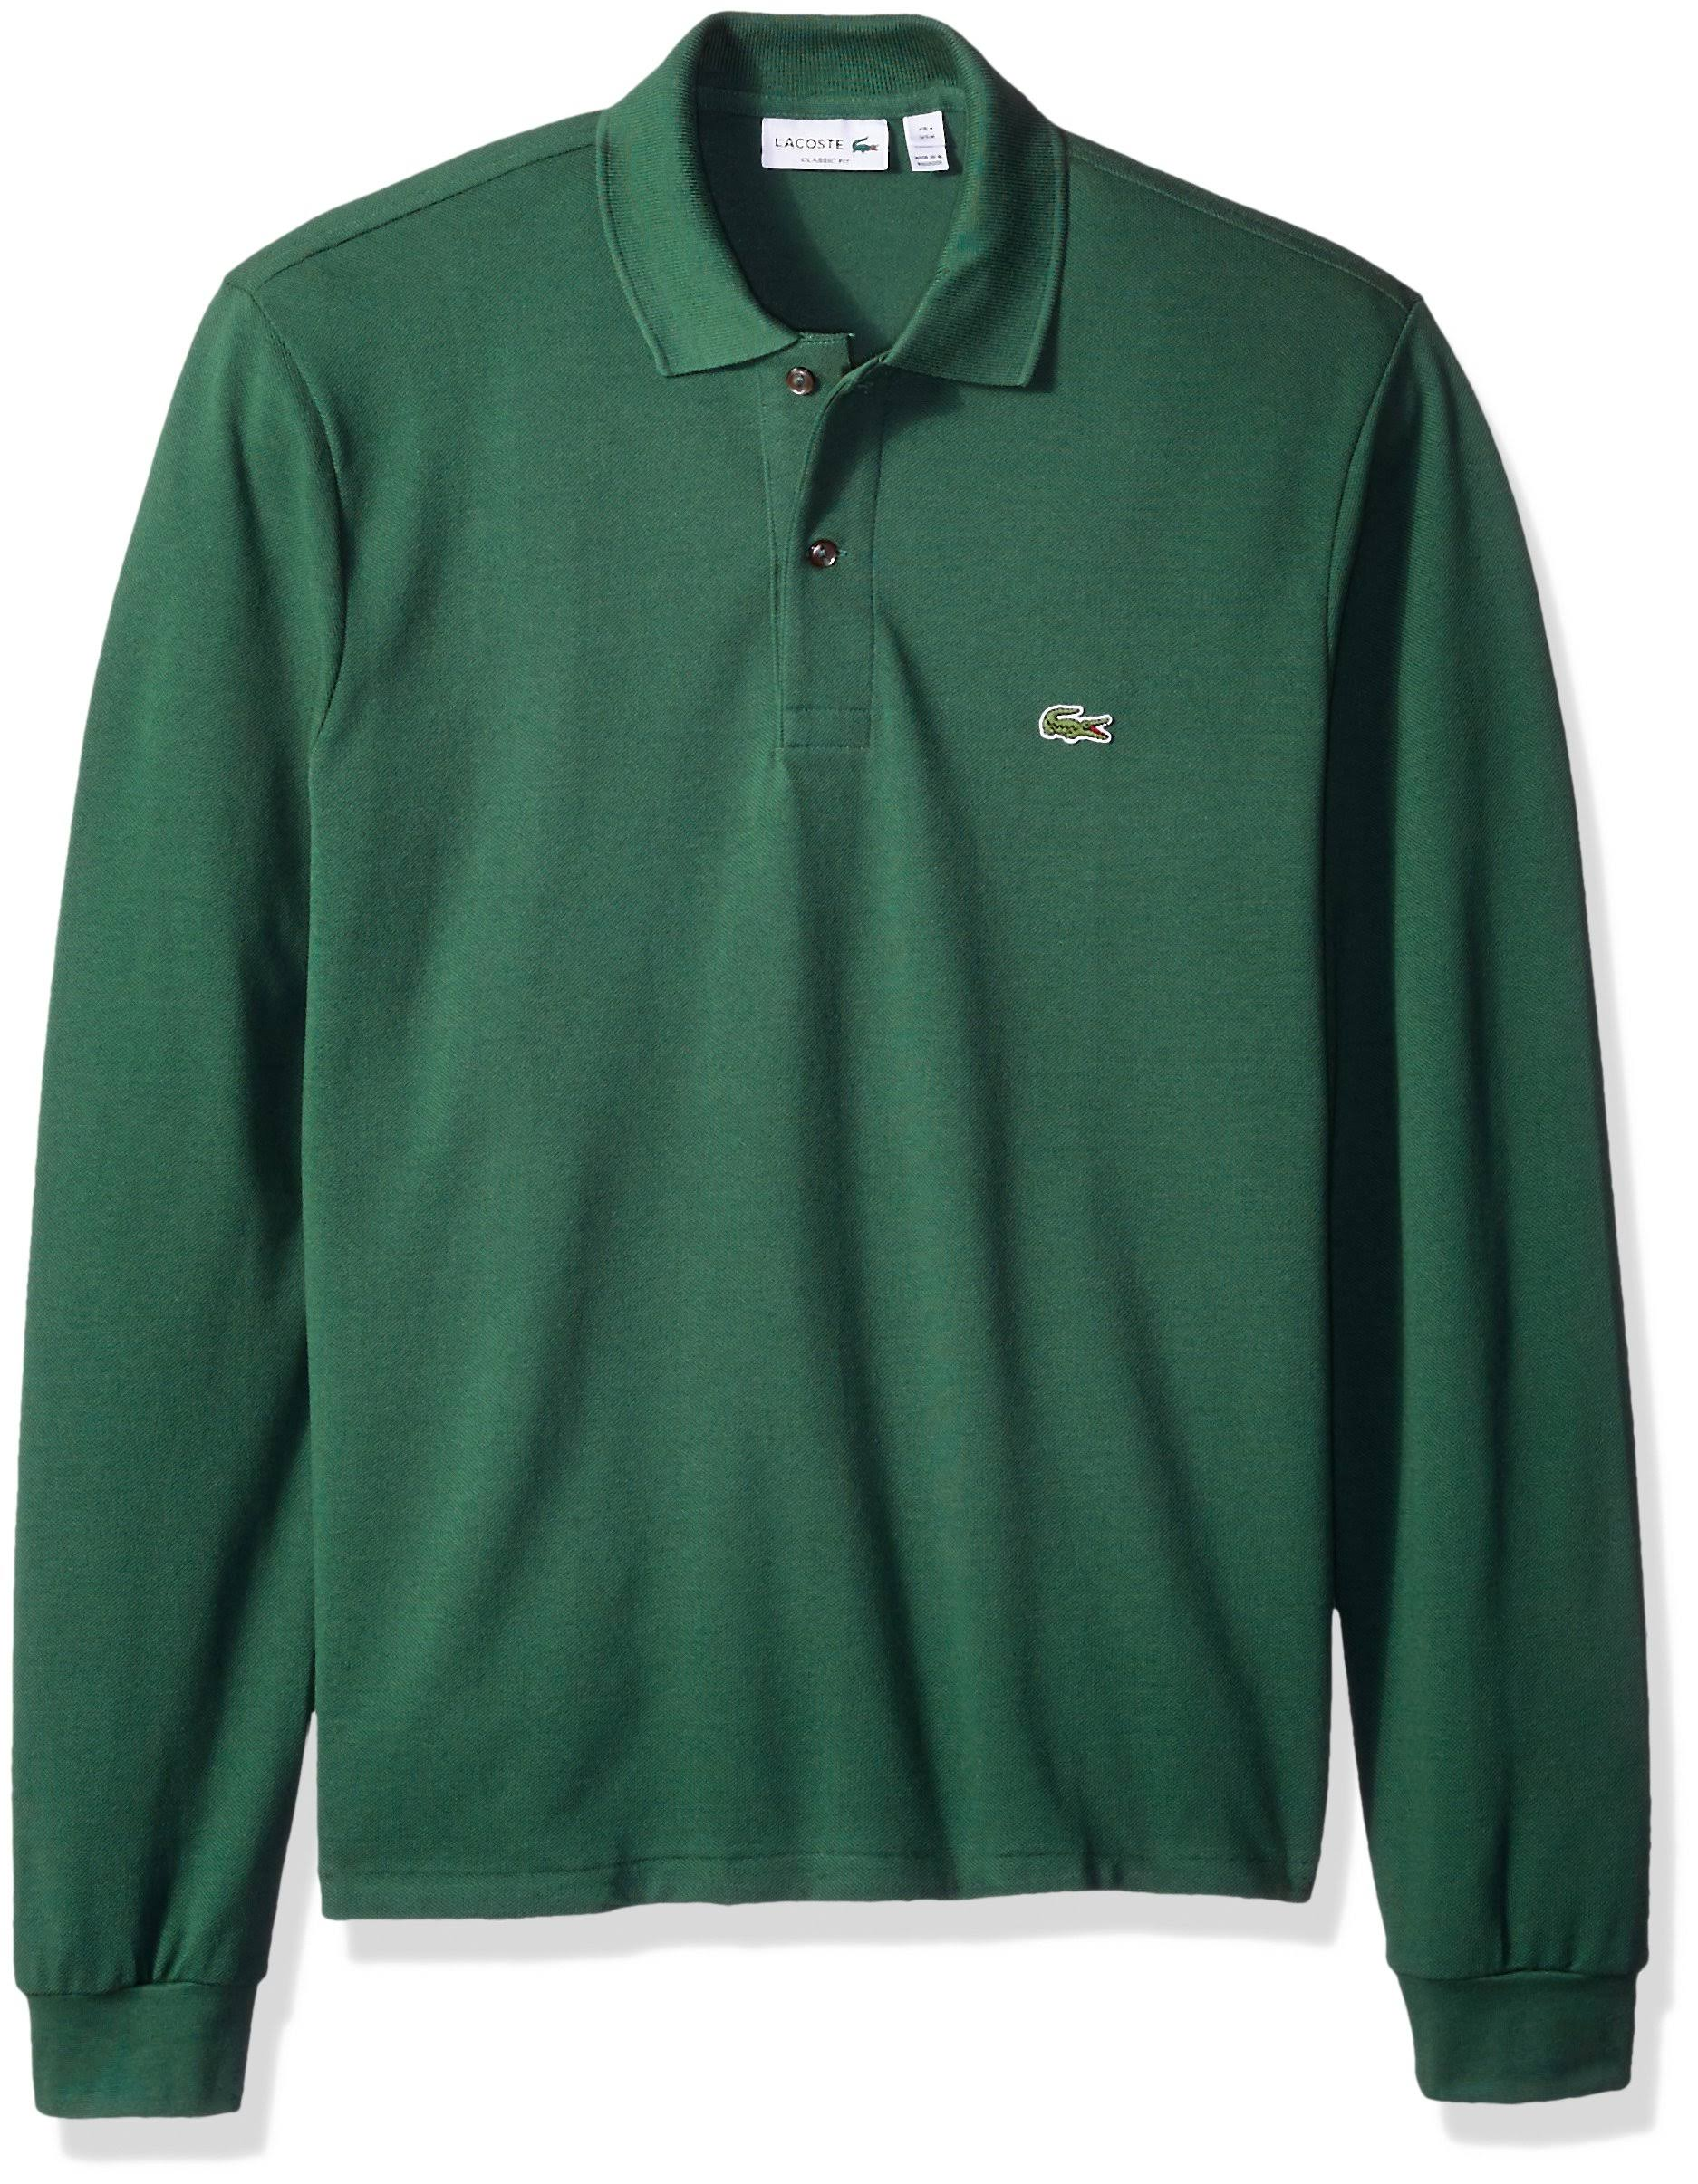 shirt Polo Lacoste Langärmliges Kelly Mit Pikee Green wqxPSEOx